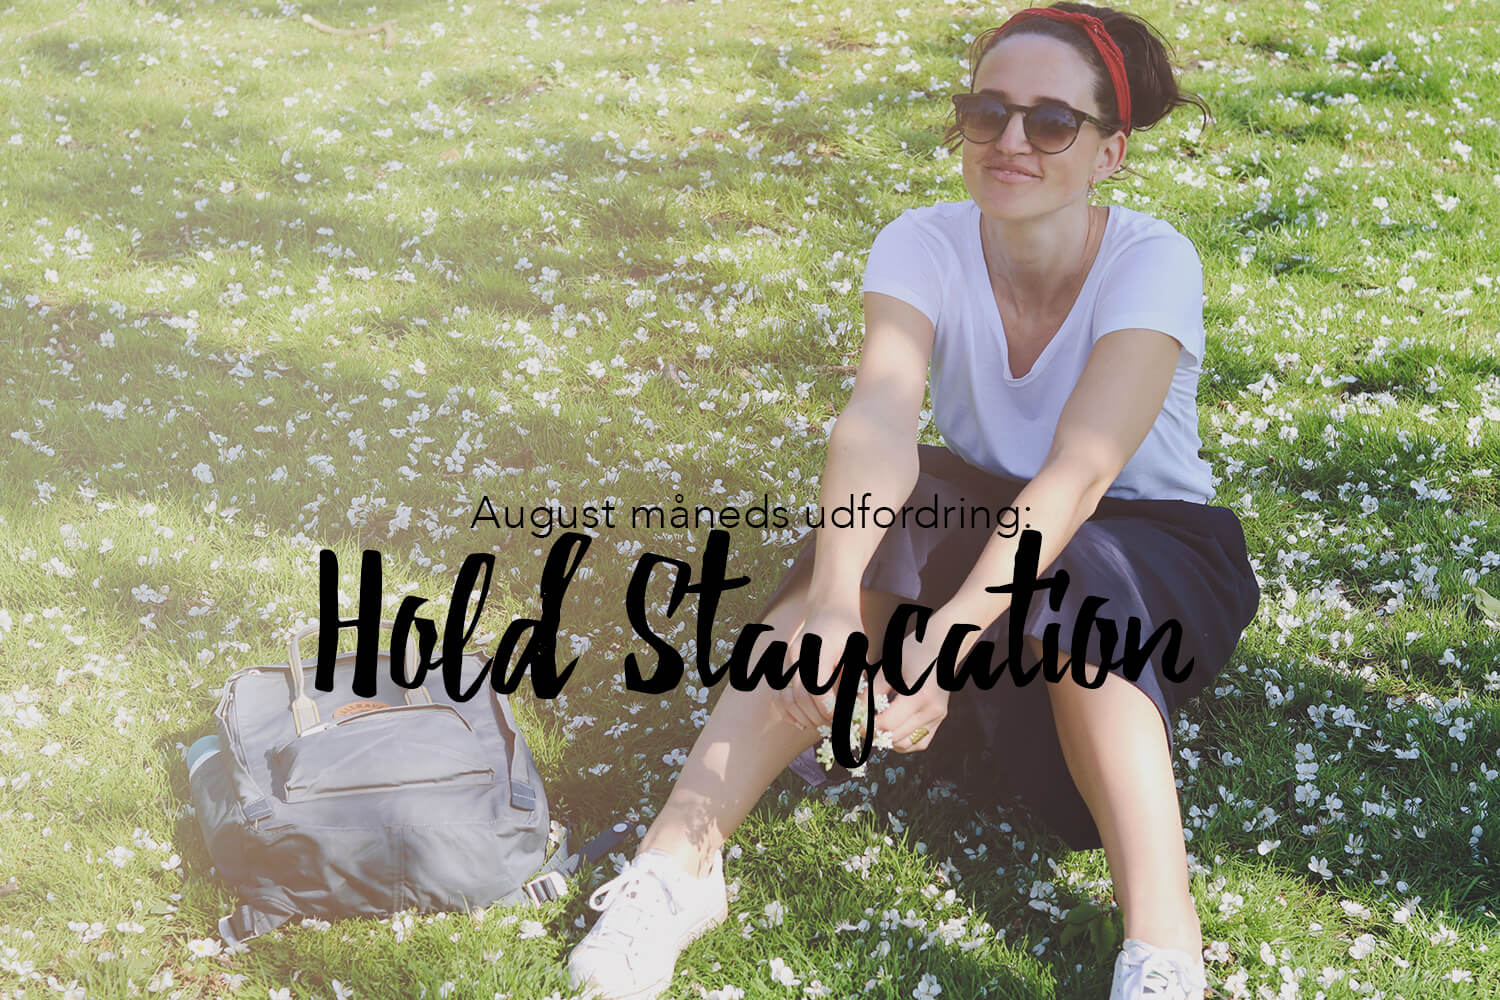 August måneds udfordring: Hold staycation